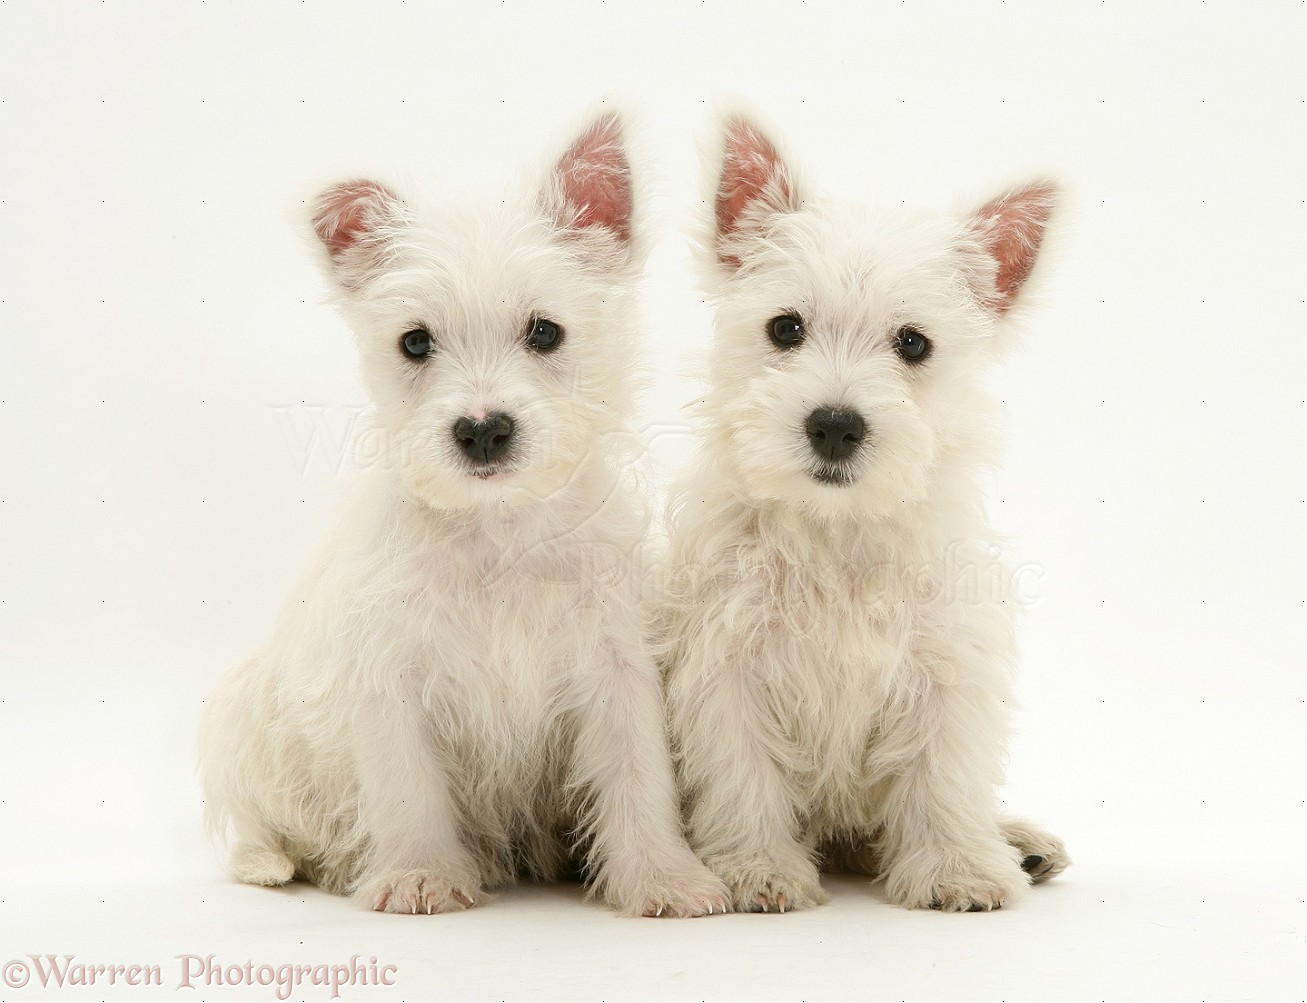 Dogs: Westie pups photo - WP13403